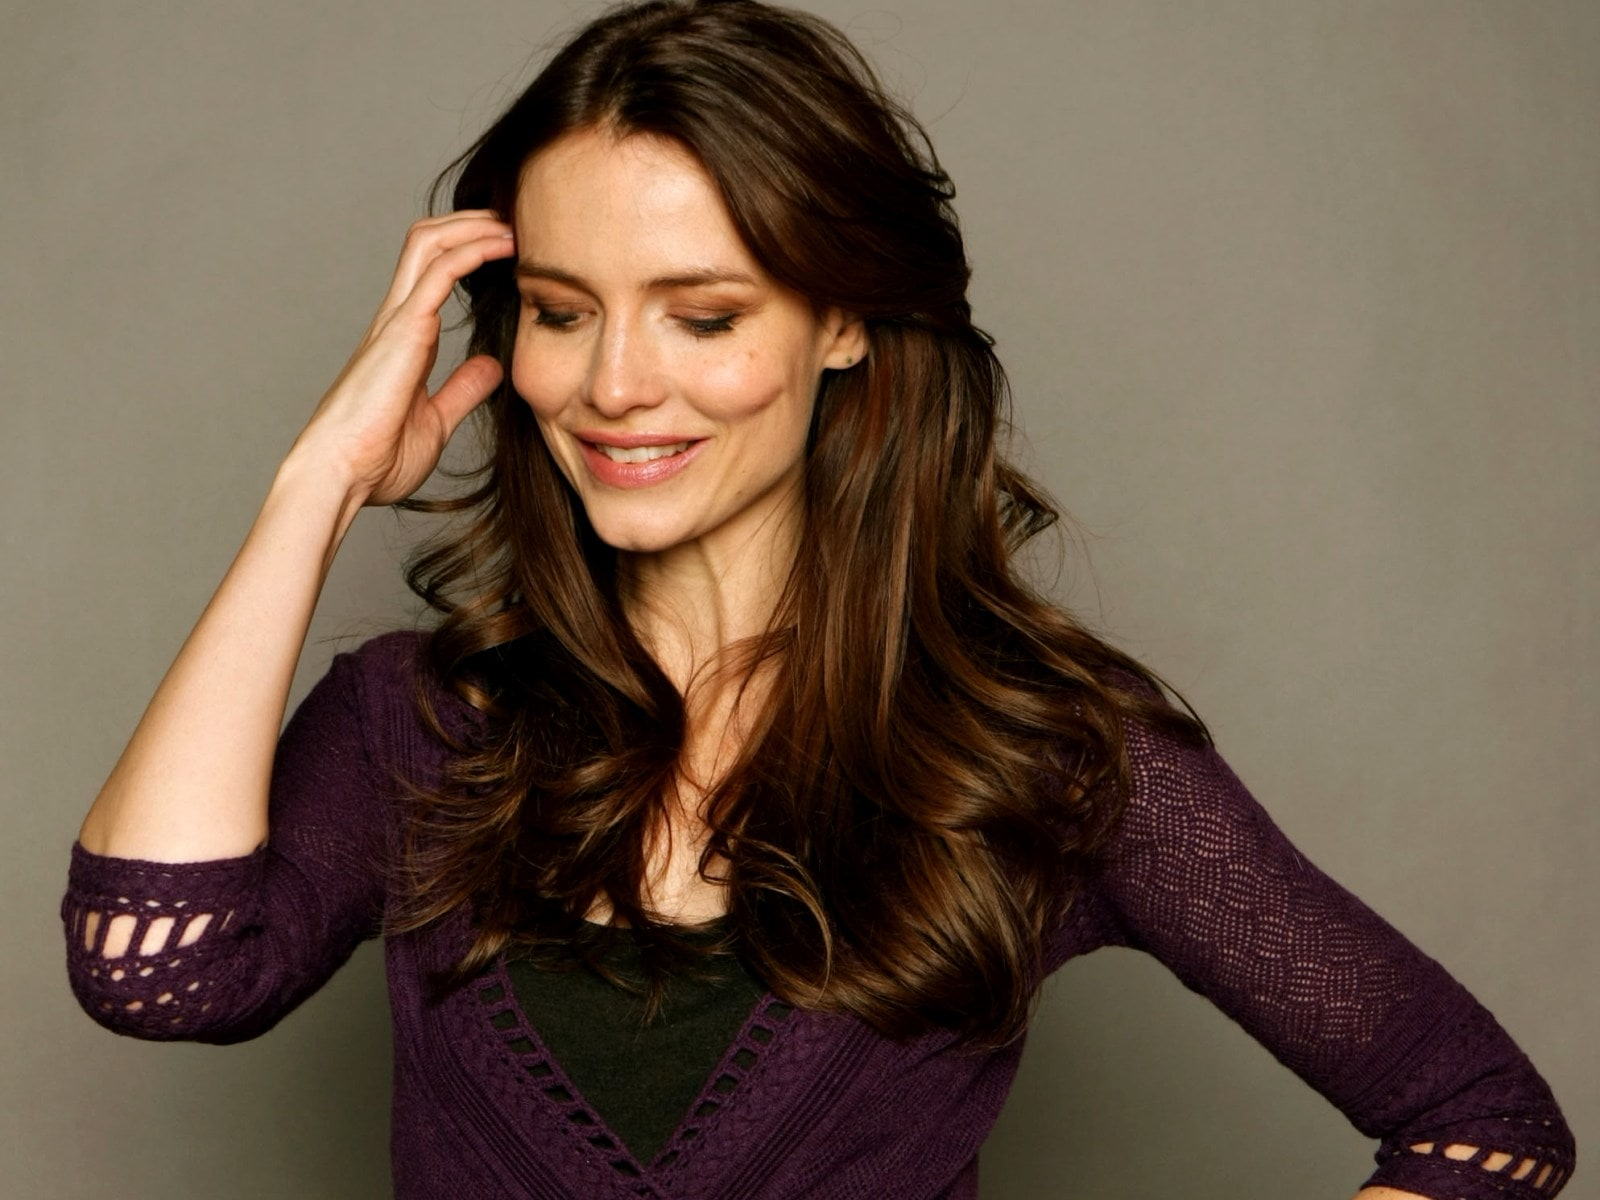 Saffron Burrows widescreen wallpapers